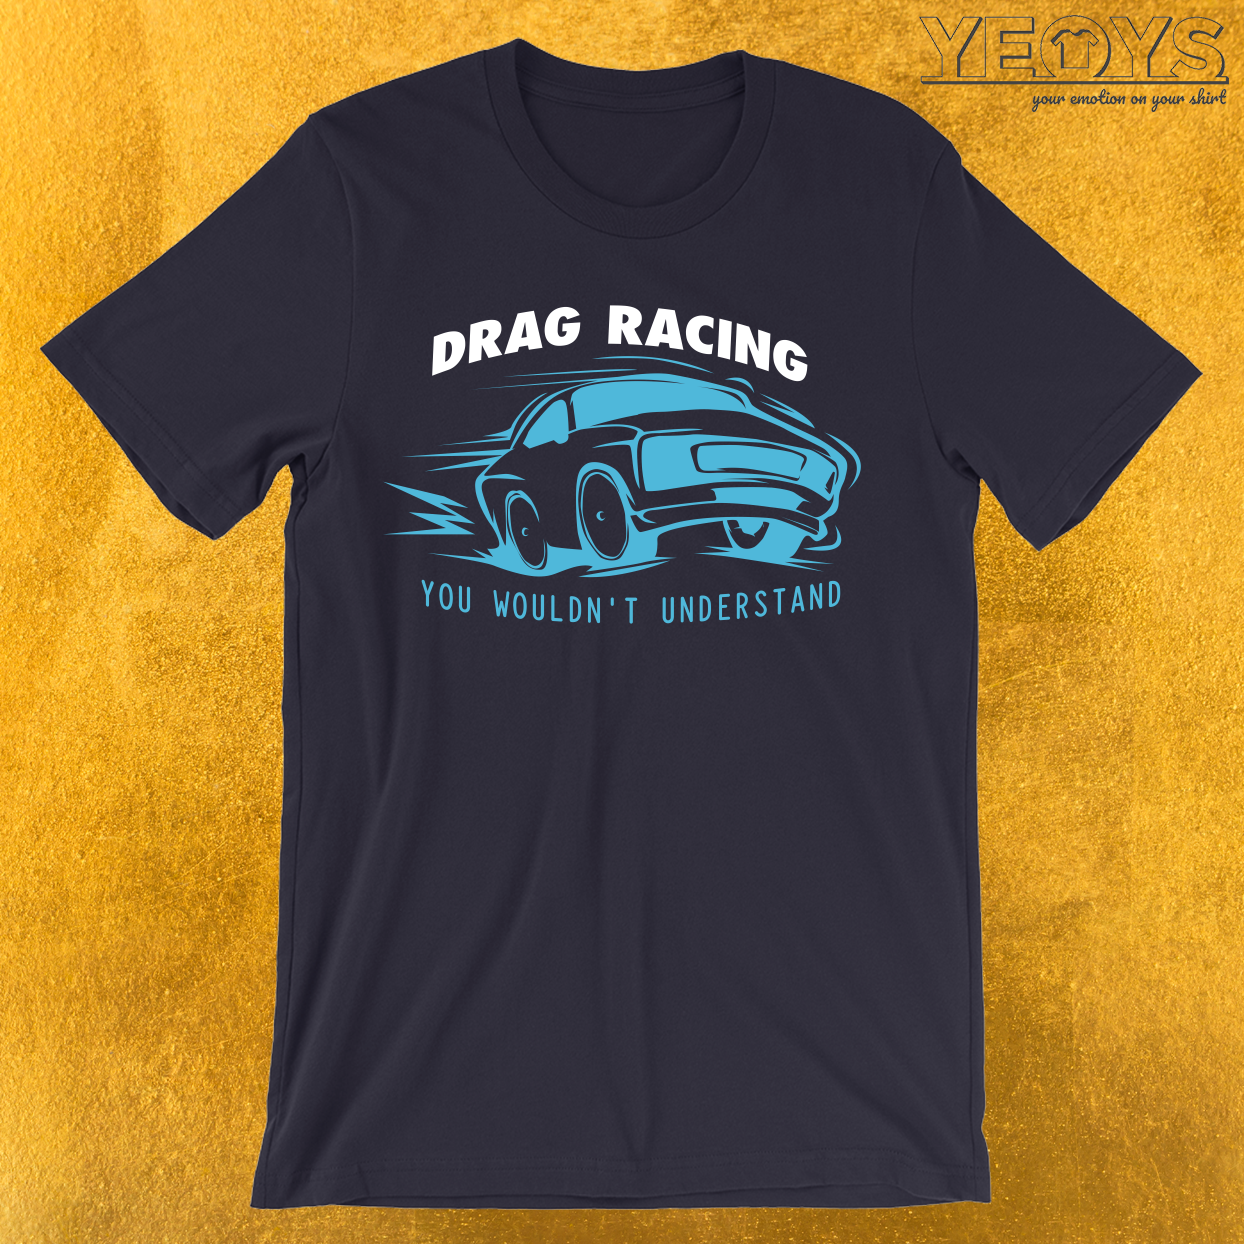 Drag Racing You Wouldn't Understand T-Shirt